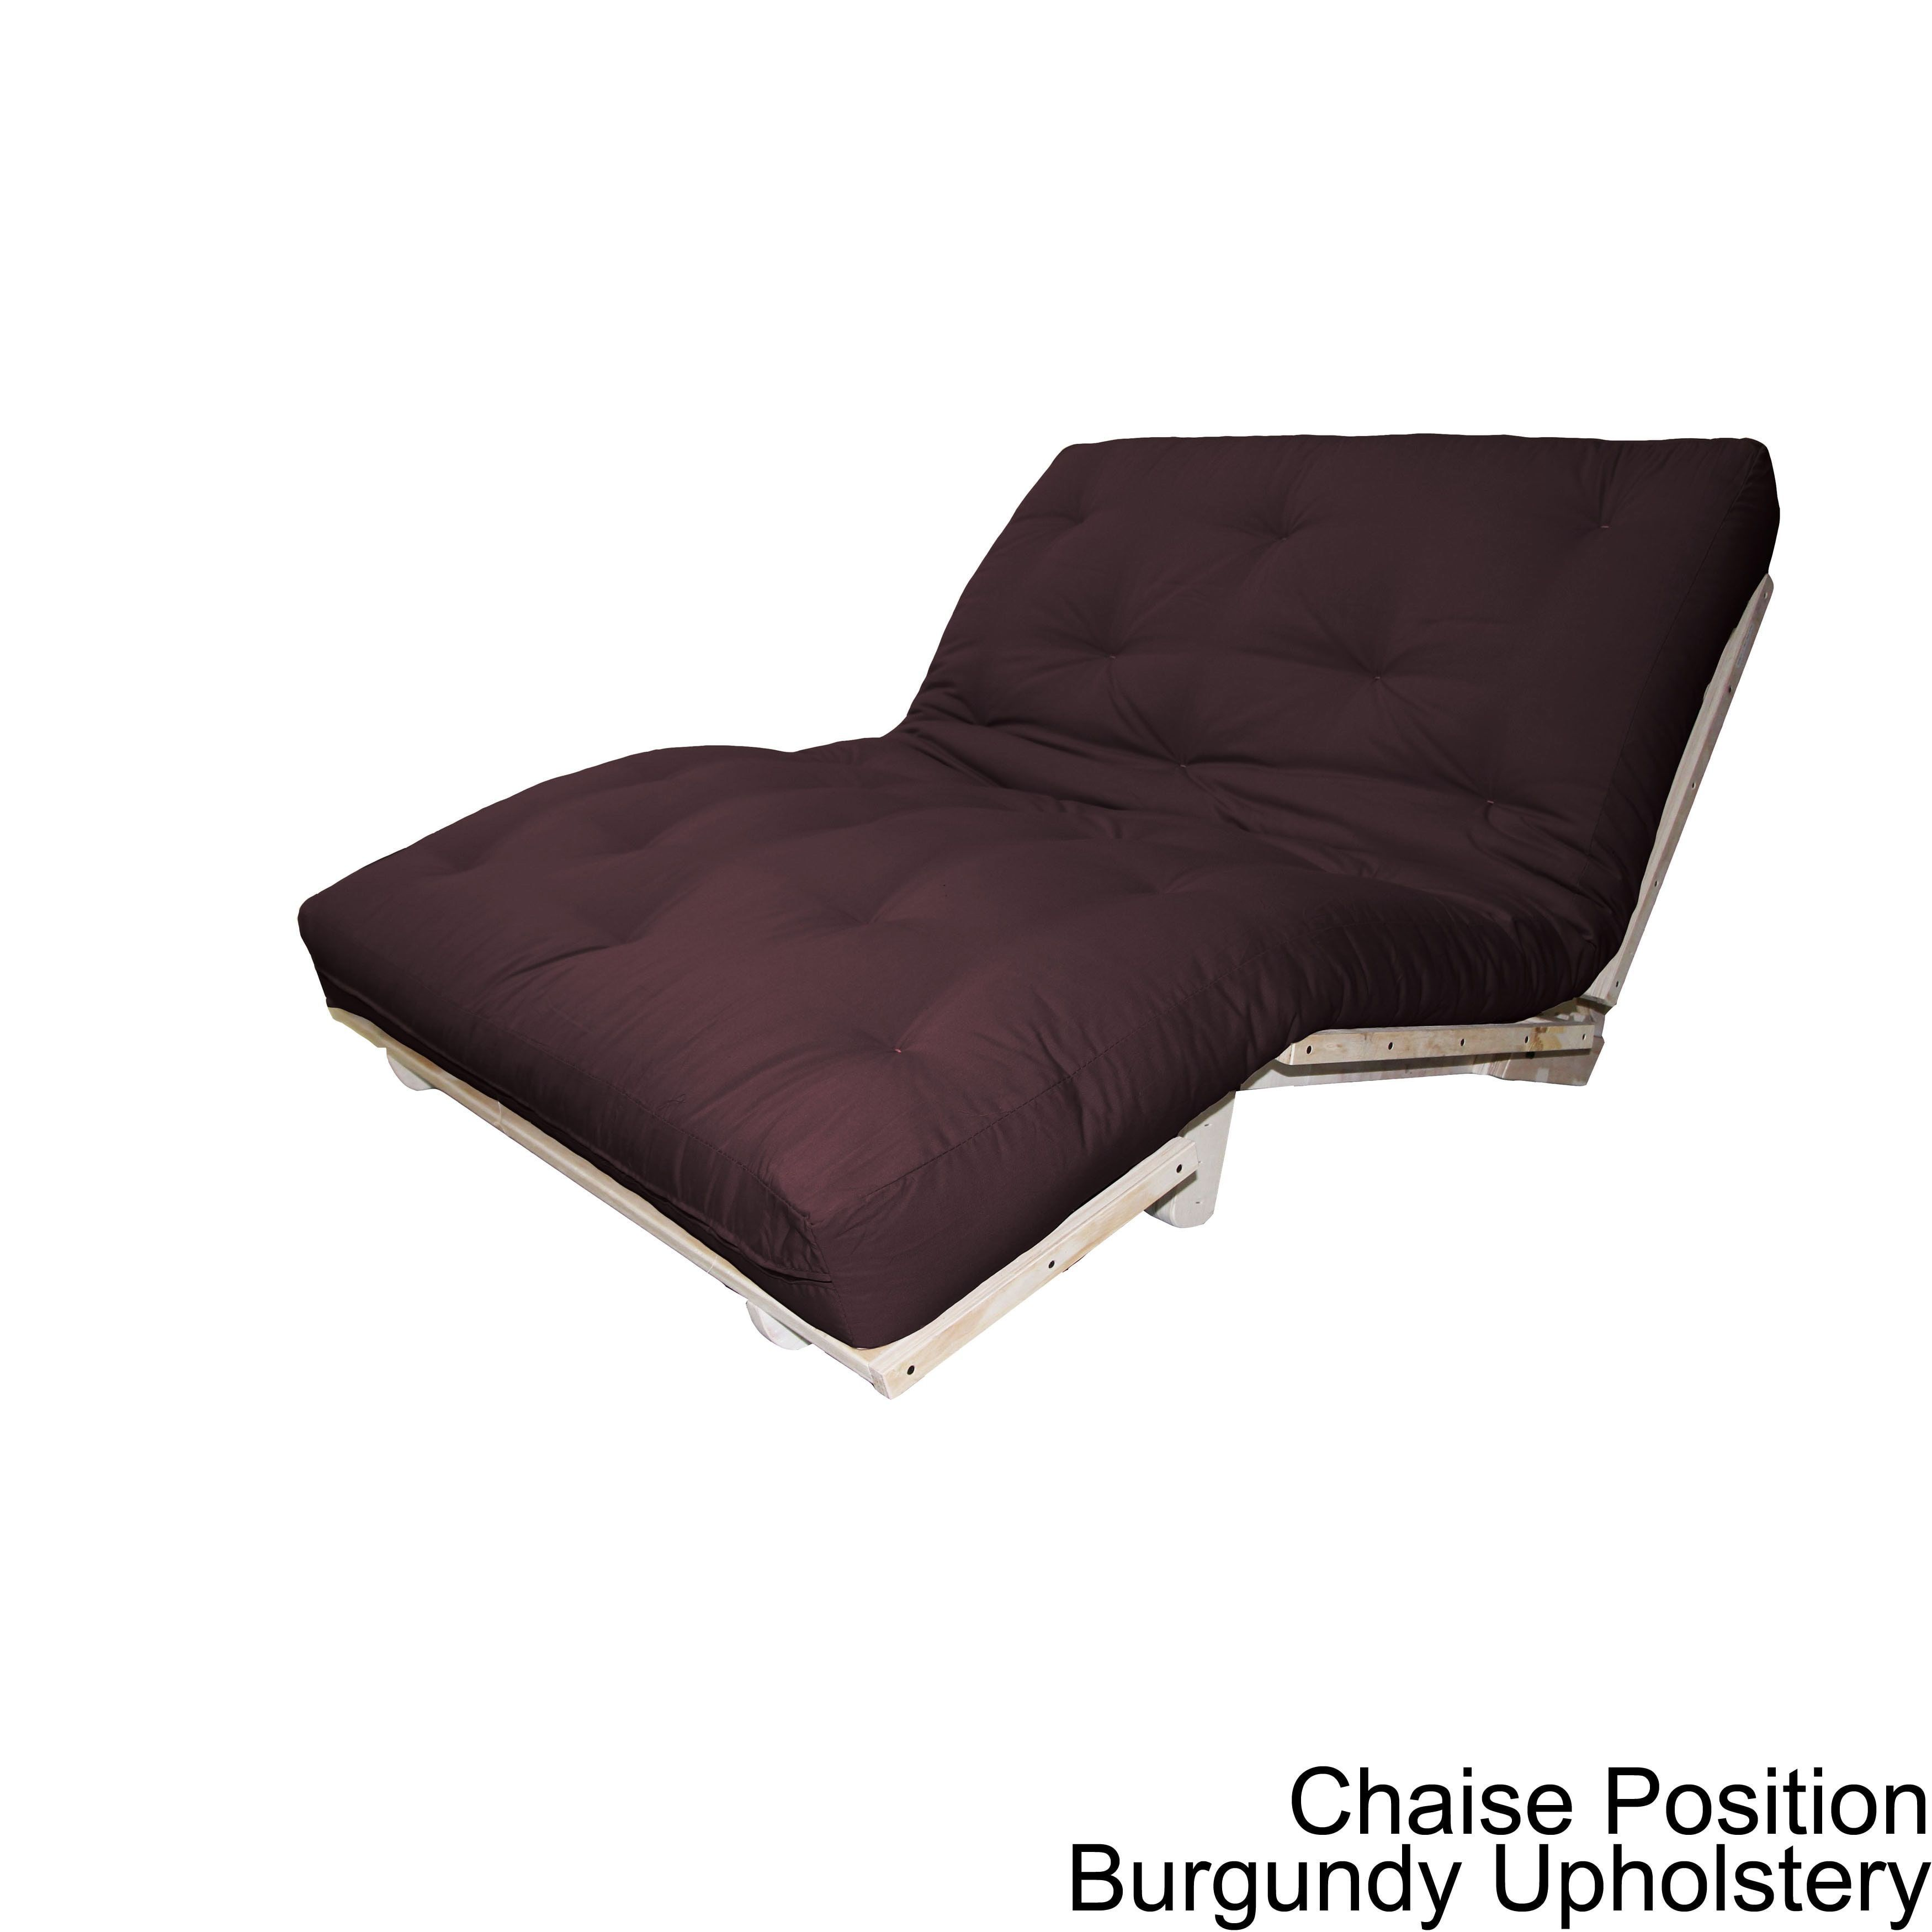 Epicfurnishings Houston All Wood Twin Full Or Queen Size Sit Lounge Sleep Futon Set With Burgundy Upholstery Red